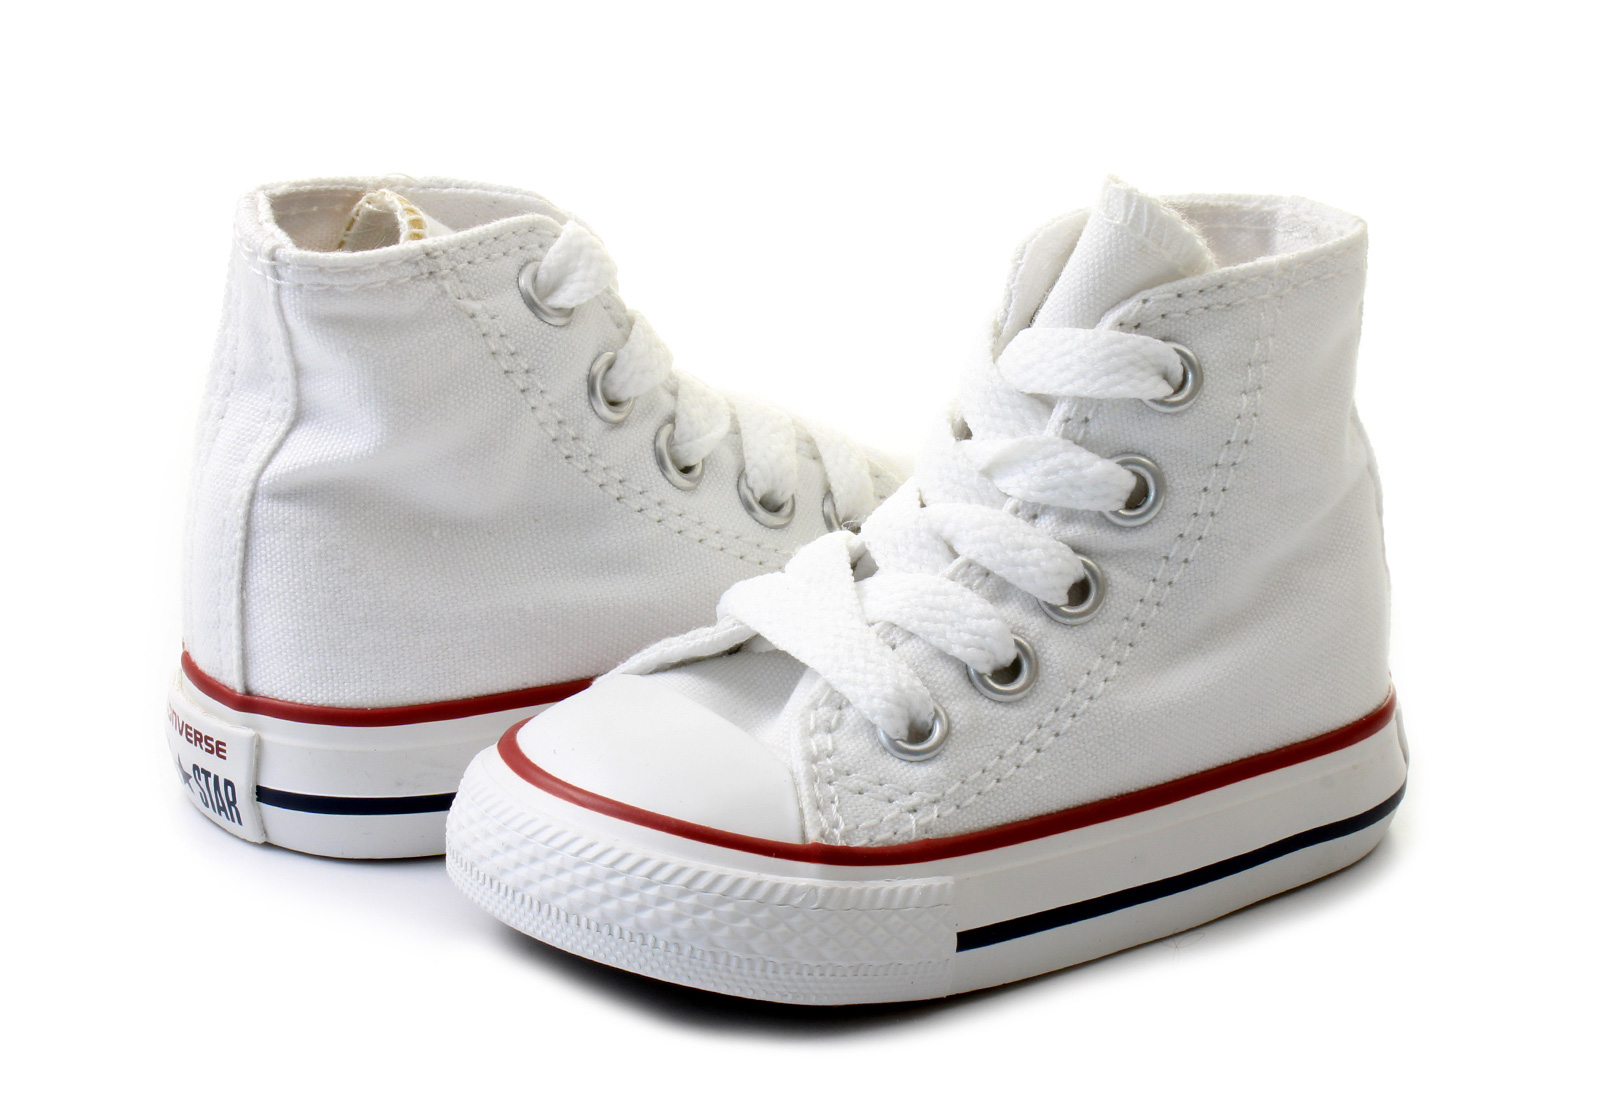 Converse Sneakers Chuck Taylor All Star Core Kids Hi 7J253C Online shop for sneakers, shoes and boots